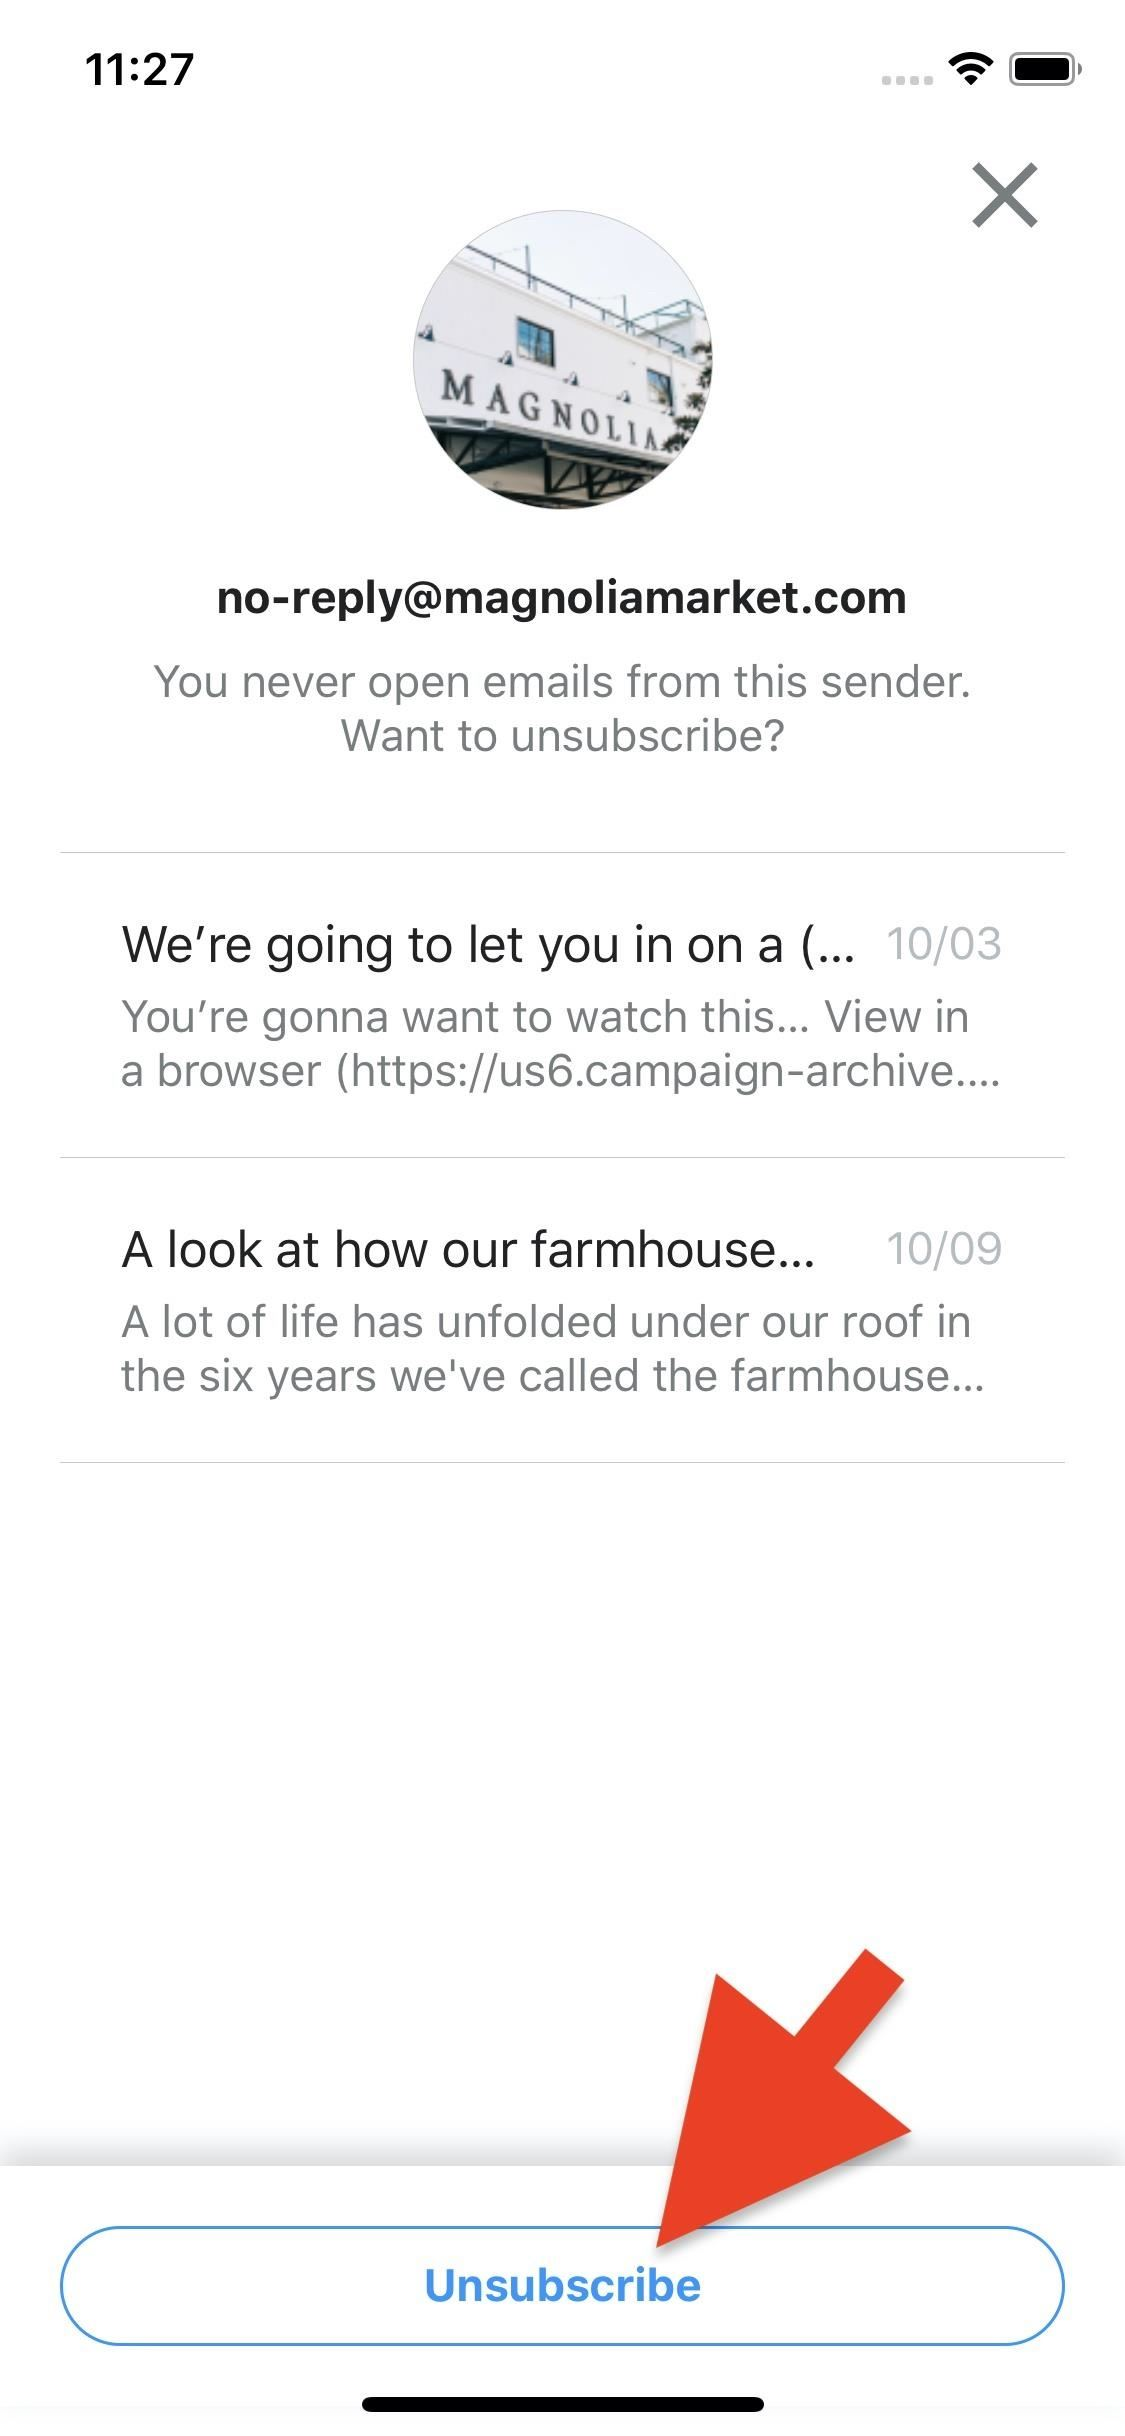 Cut Down on Email Spam with Edison Mail's Unsubscribe Assistant